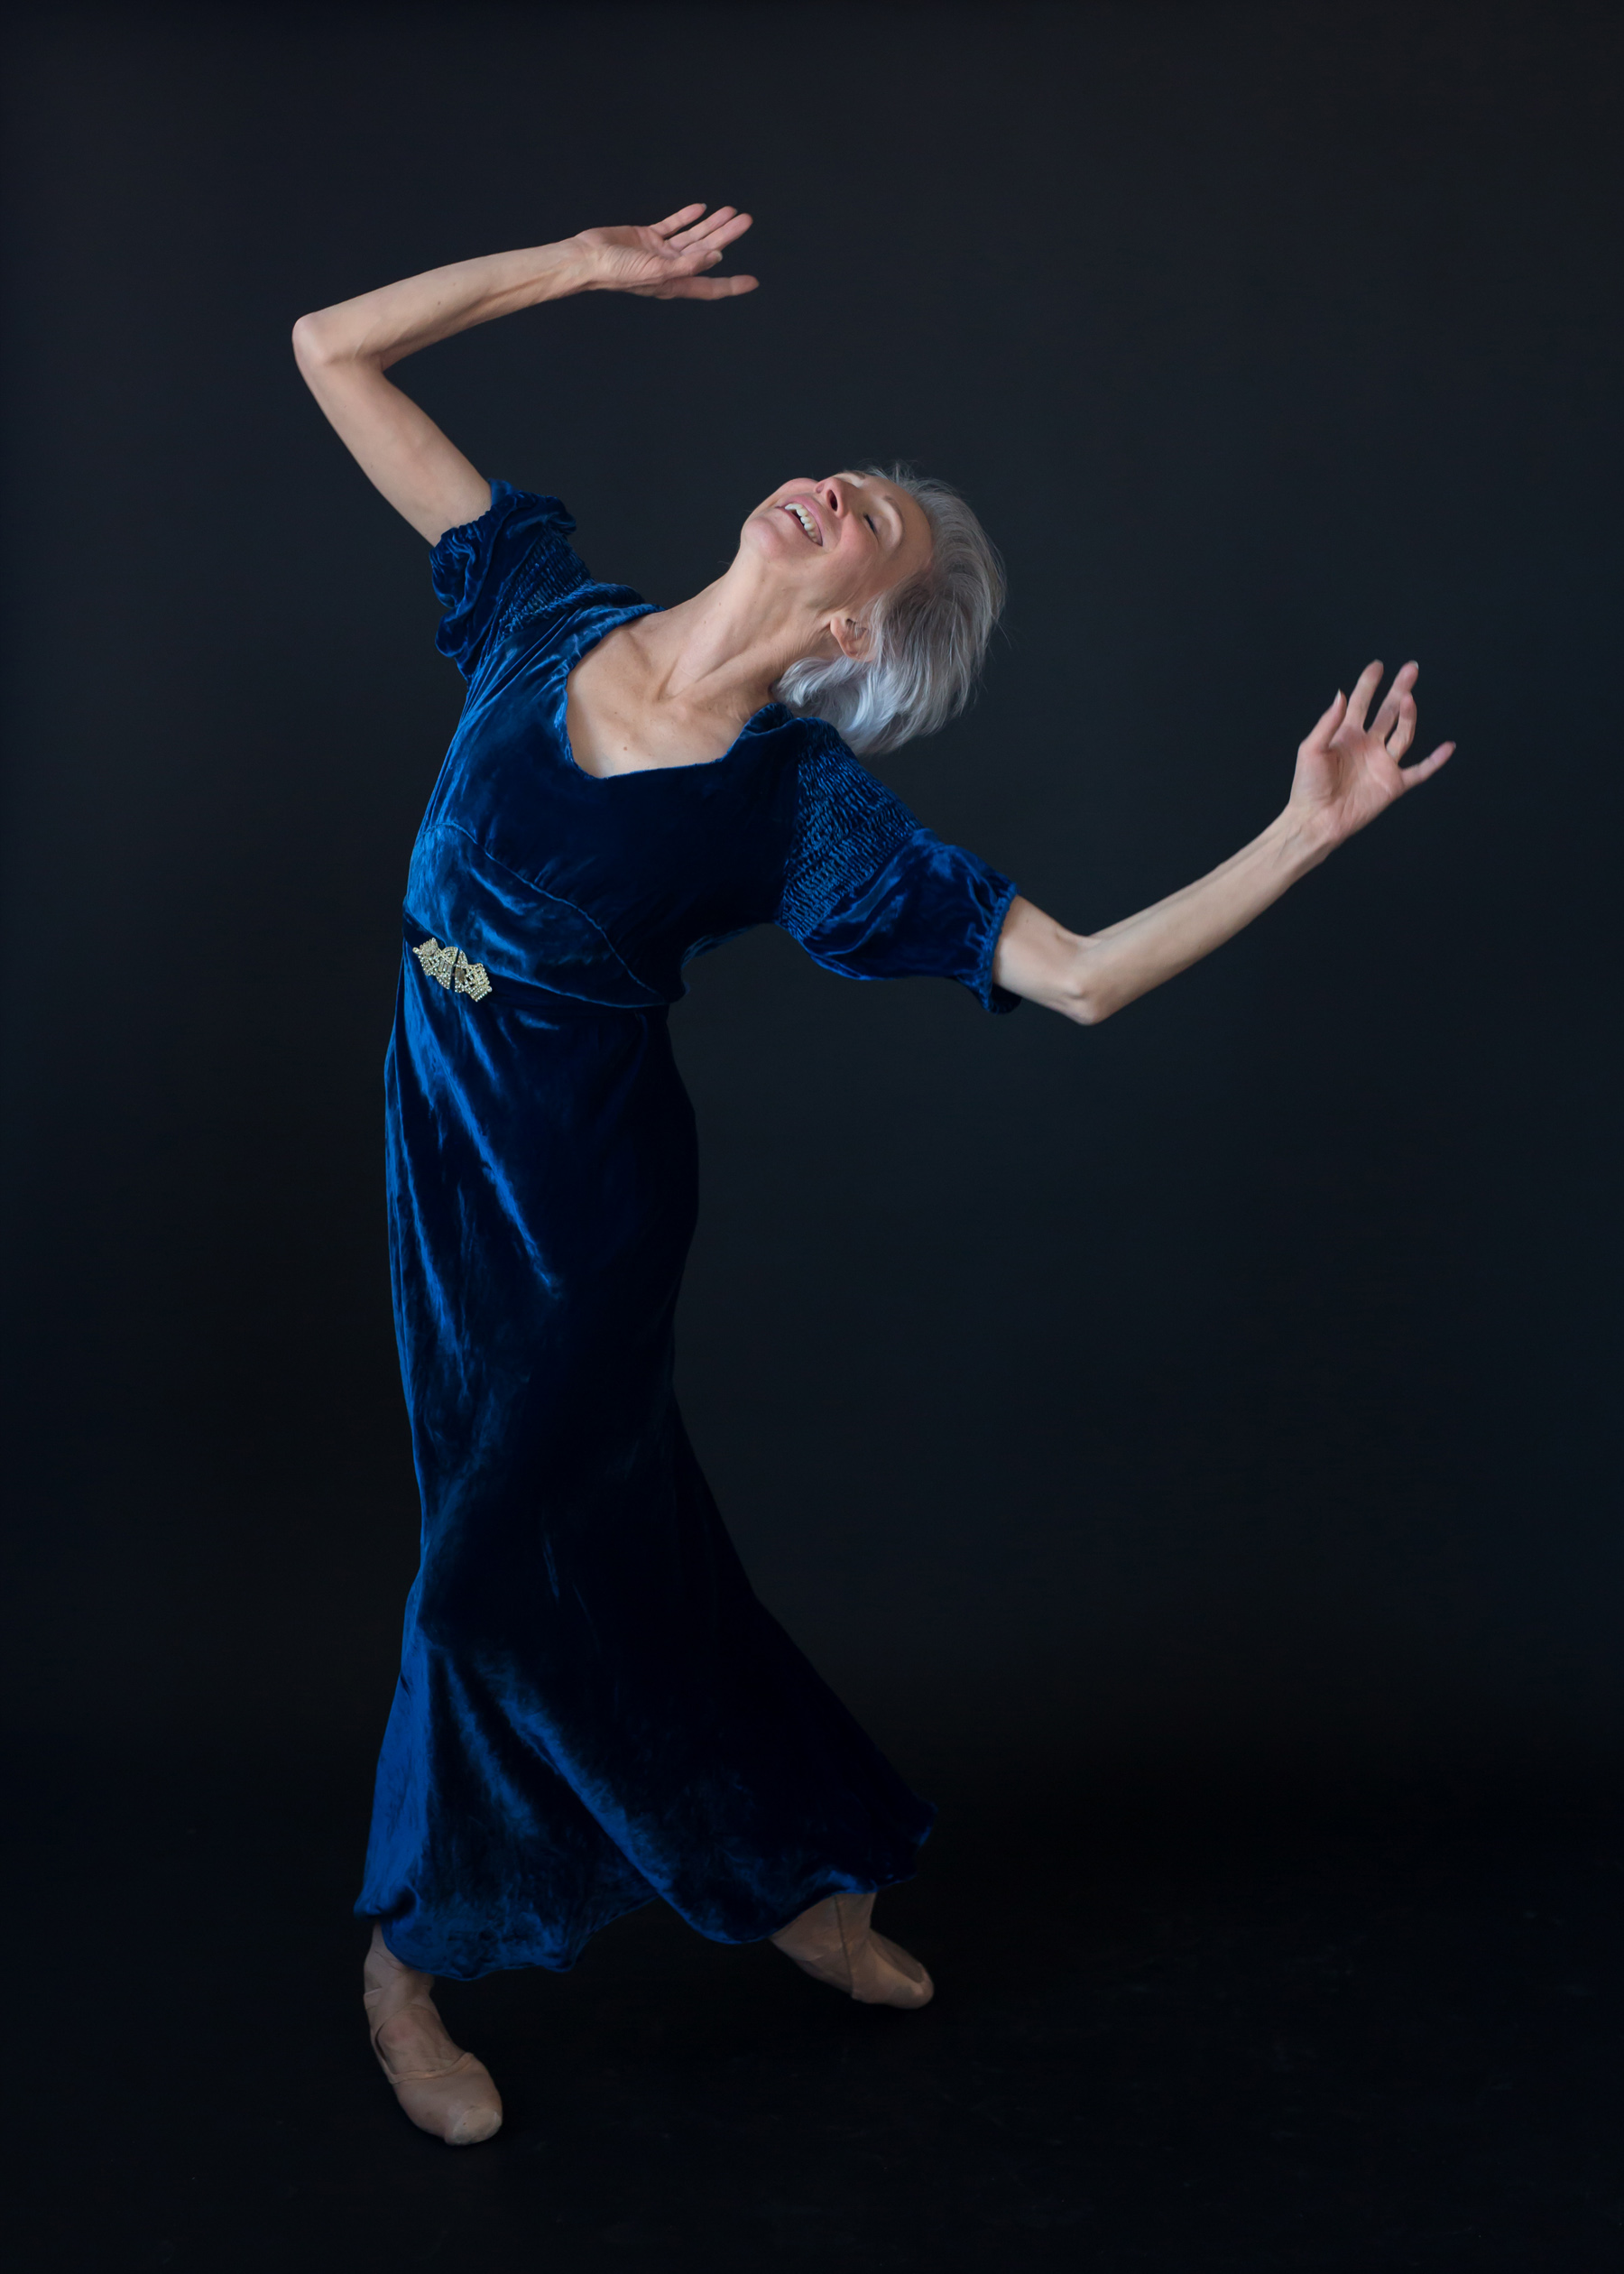 Valerie Madonia dances in vintage velvet during photo session with Denver dance photographer Jennifer Koskinen, Merritt Portrait Studio